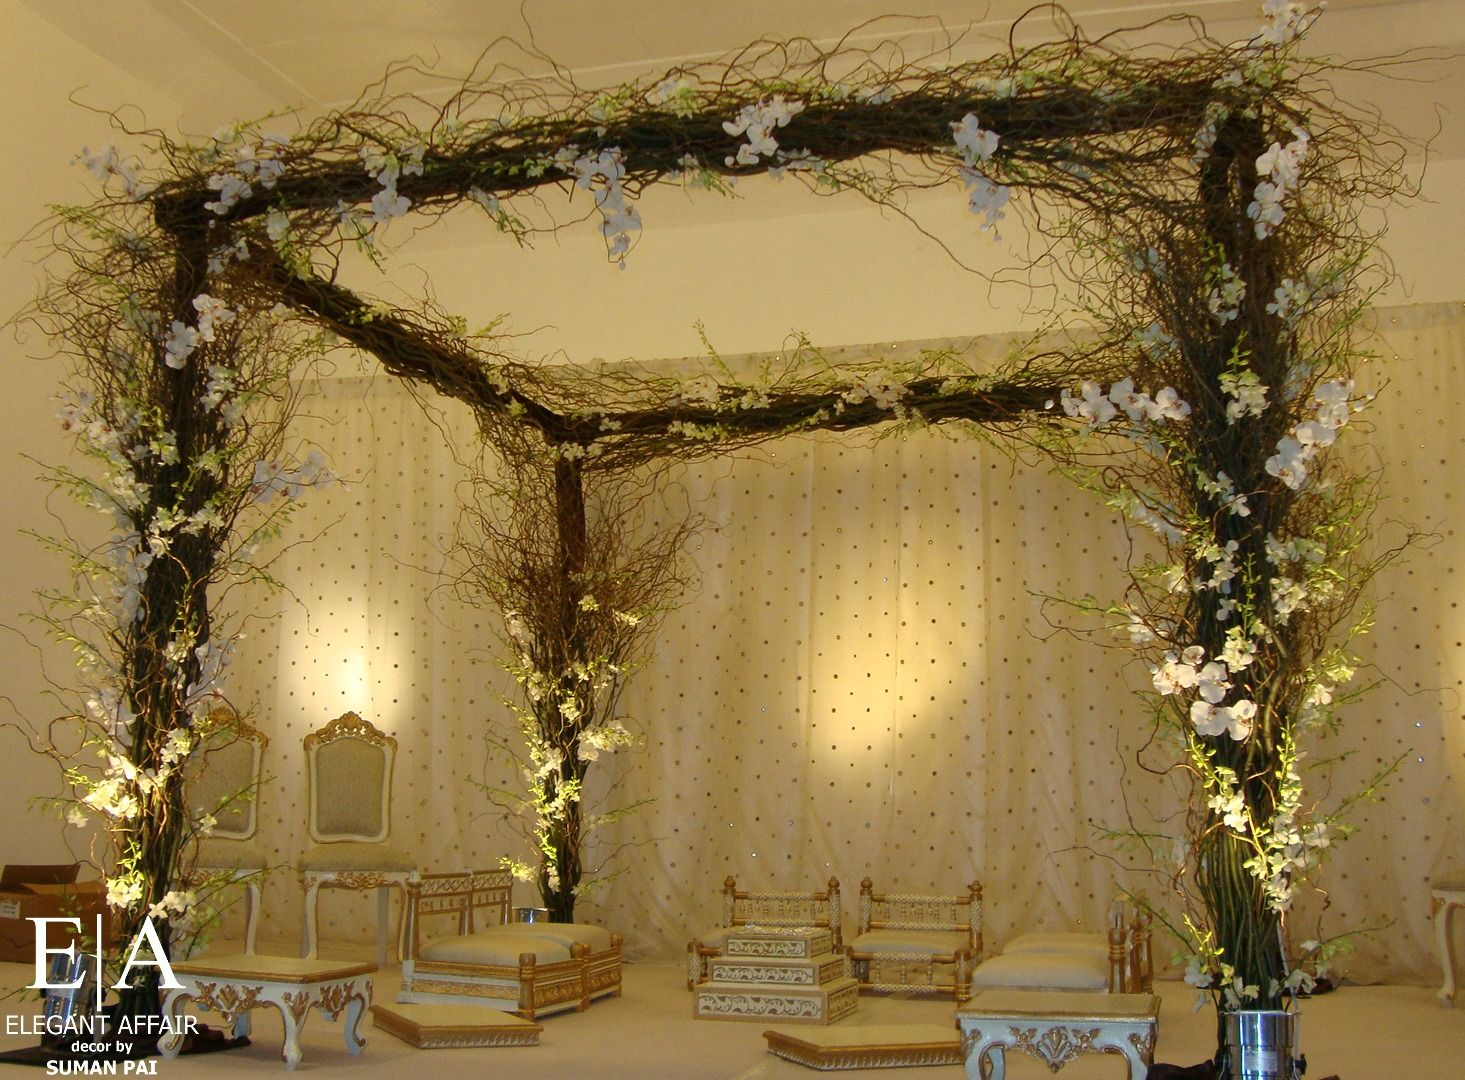 32 best gazebo mandaps images on pinterest indian bridal indian curly willow square mandap orchids indian decor contemporary mandap garden mandap curly willowgarden themegazebowedding junglespirit Image collections